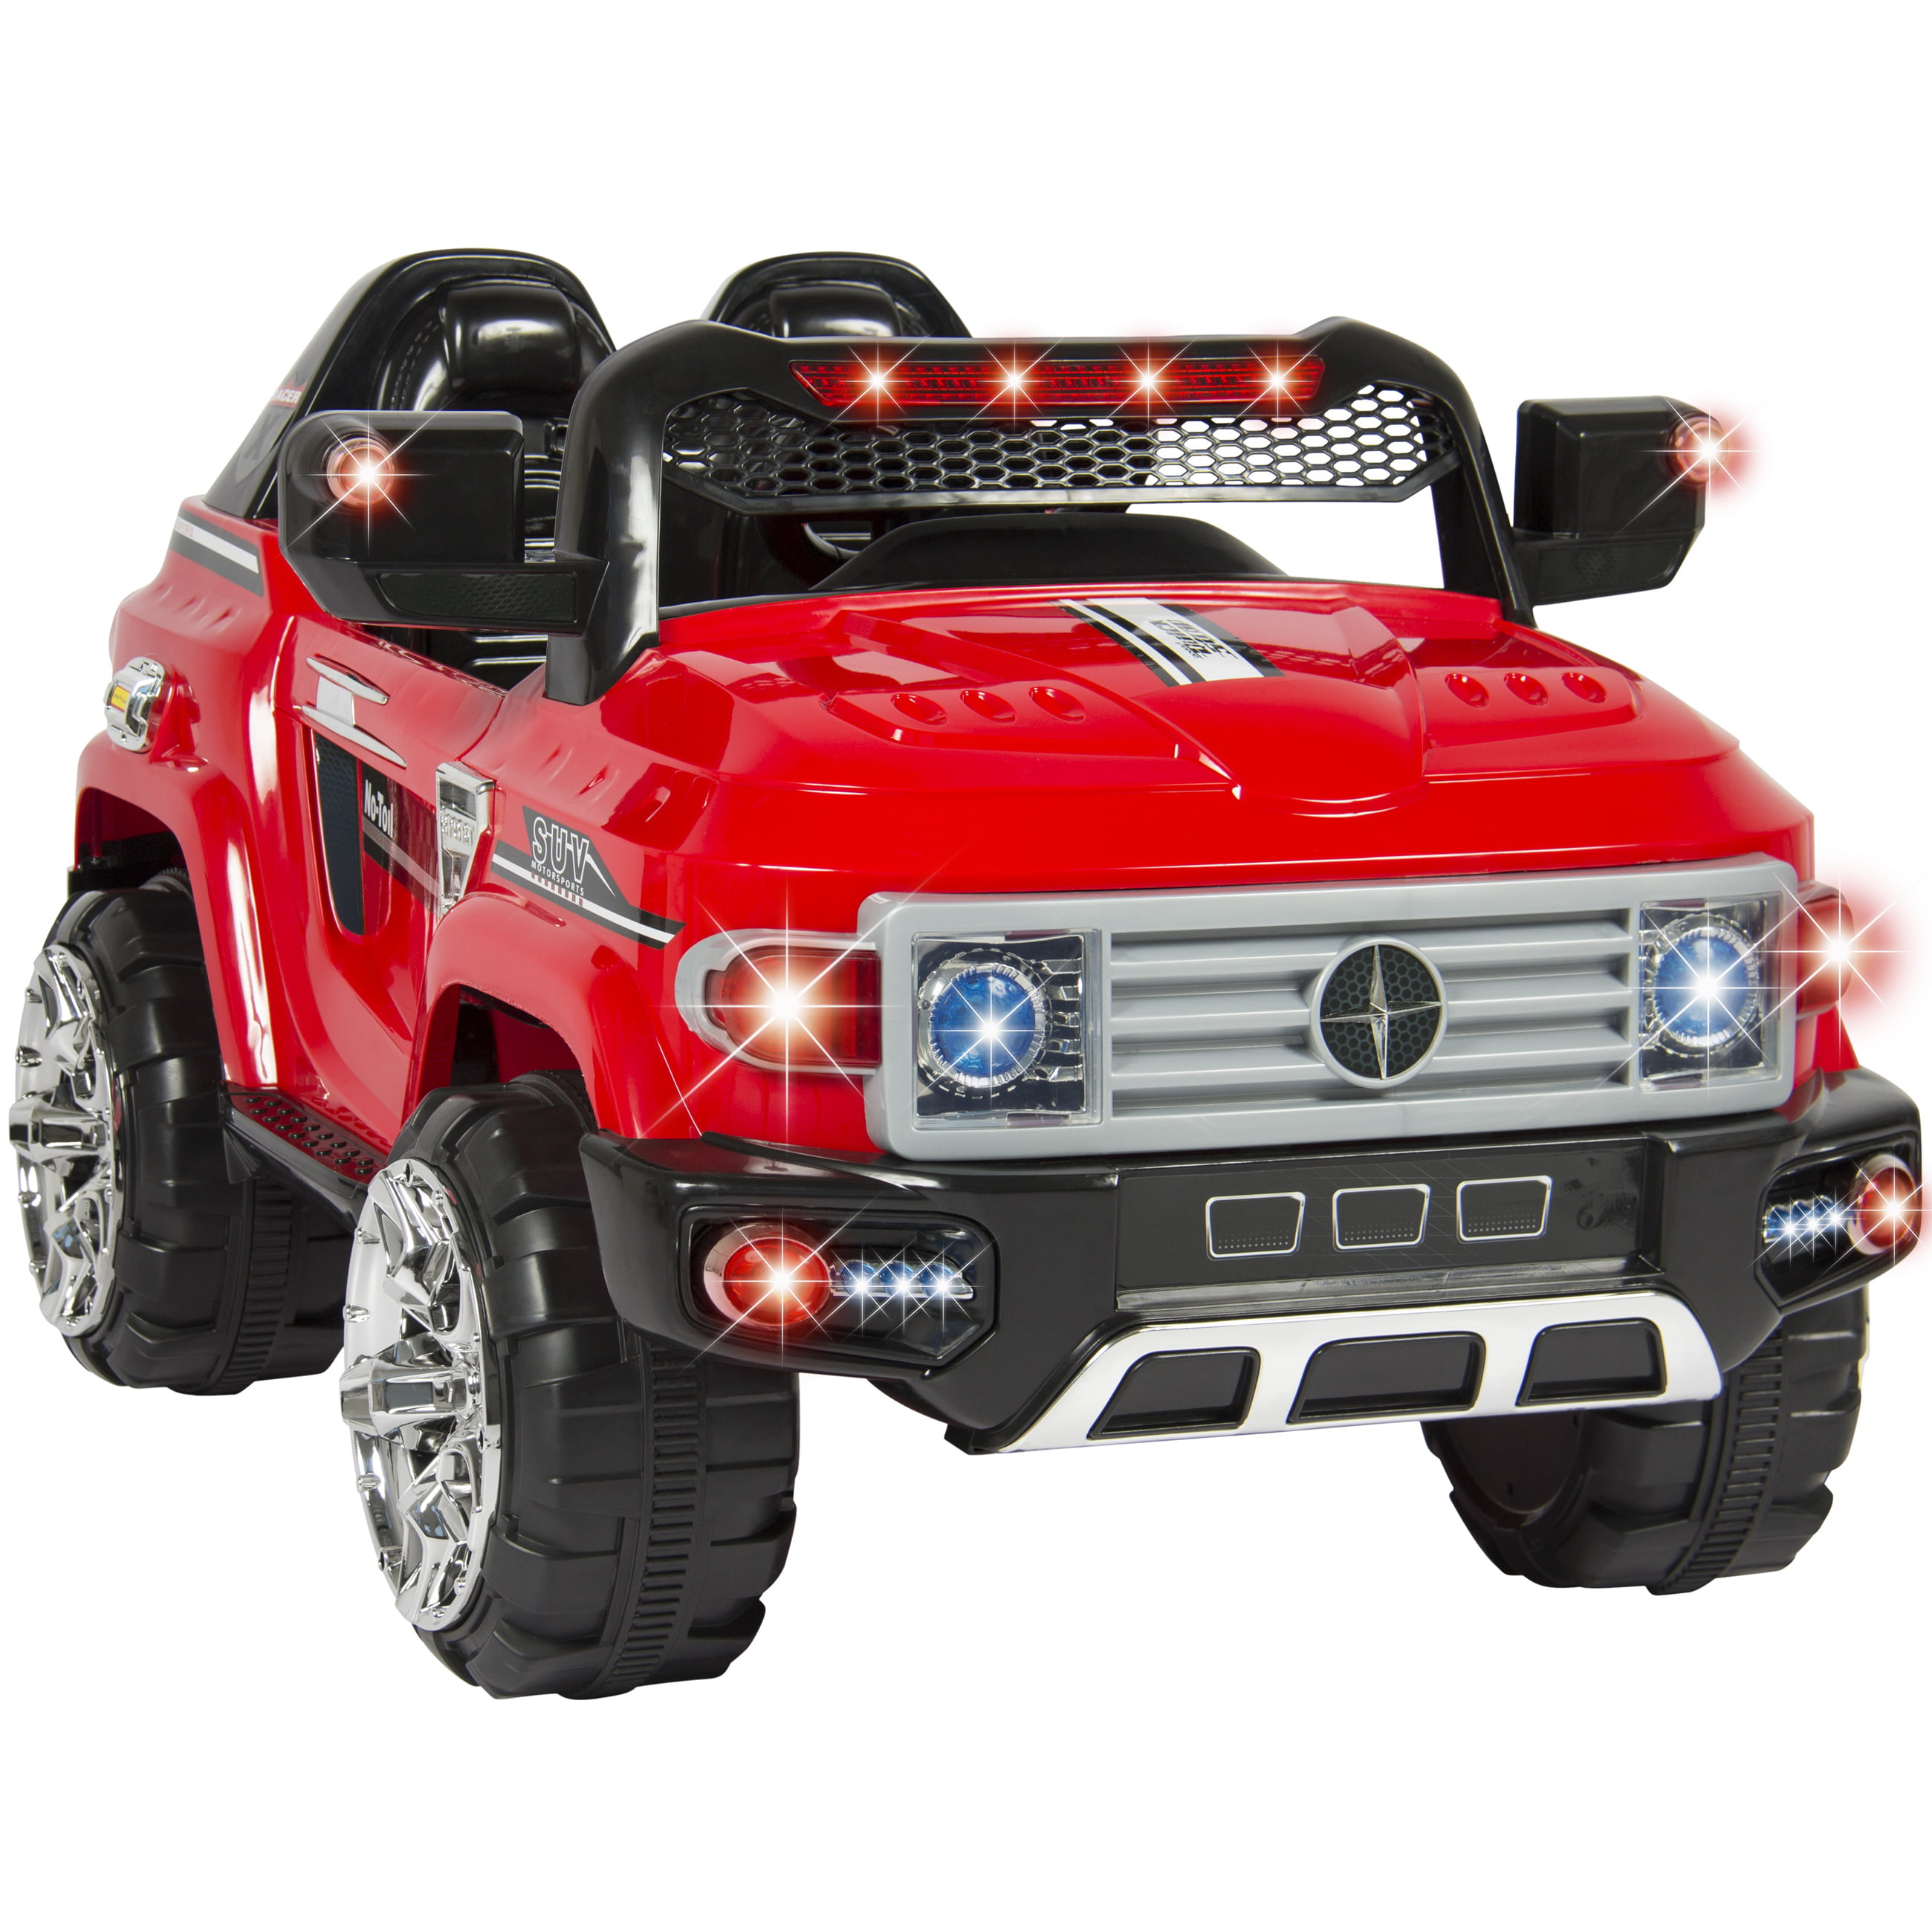 12v mp3 kids ride on truck car r c remote control led lights aux and music walmart com